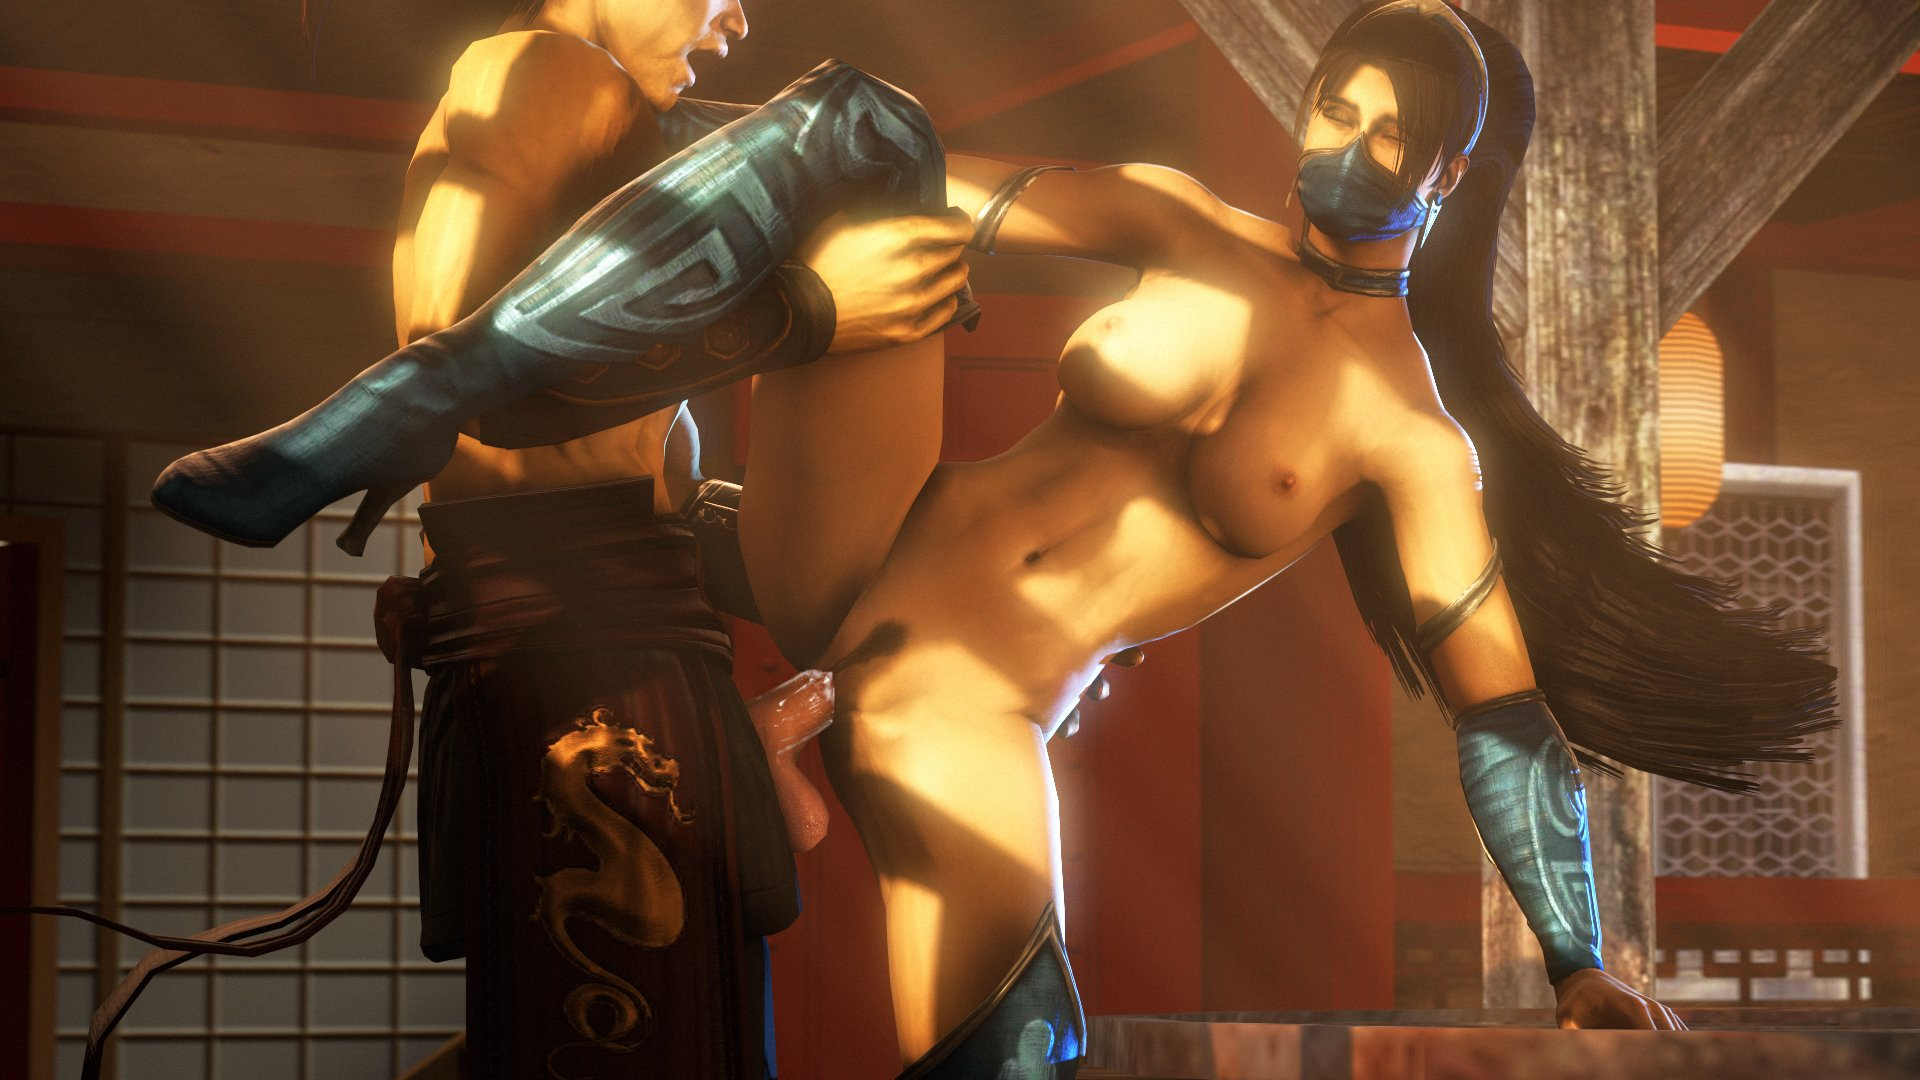 Sex mortal kombat photo nsfw photo